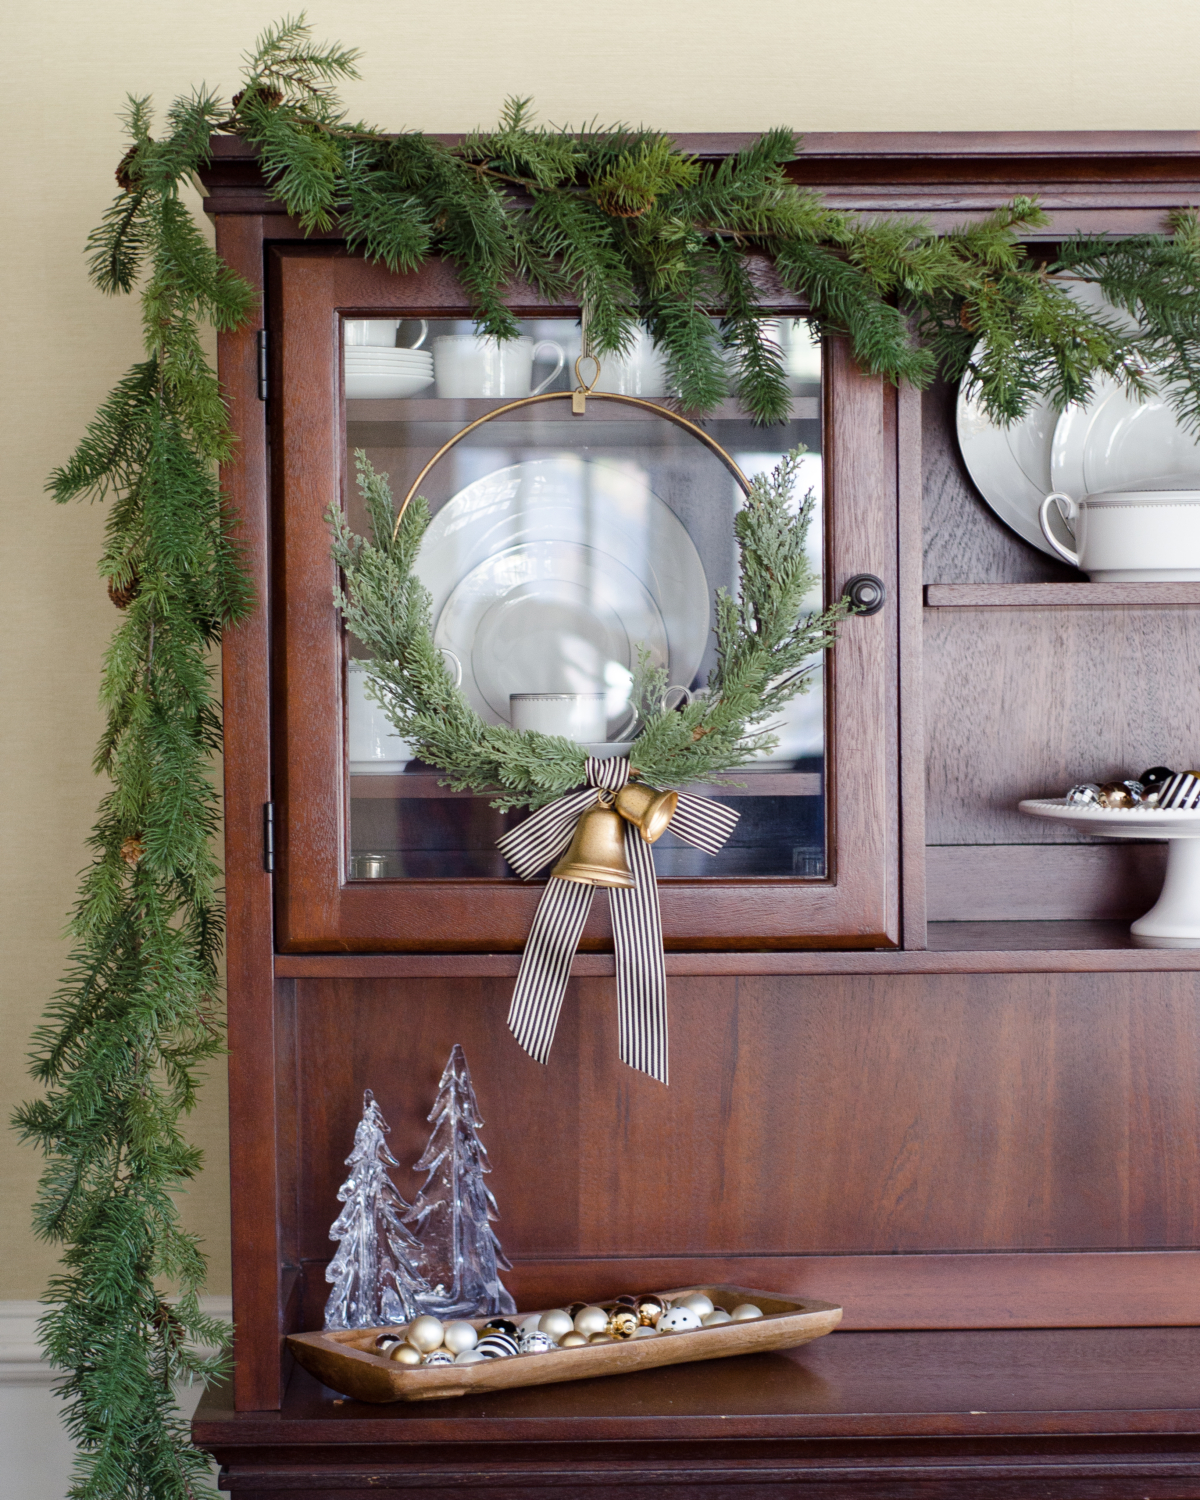 Simple greenery and gold bells on a Christmas hutch in the dining room